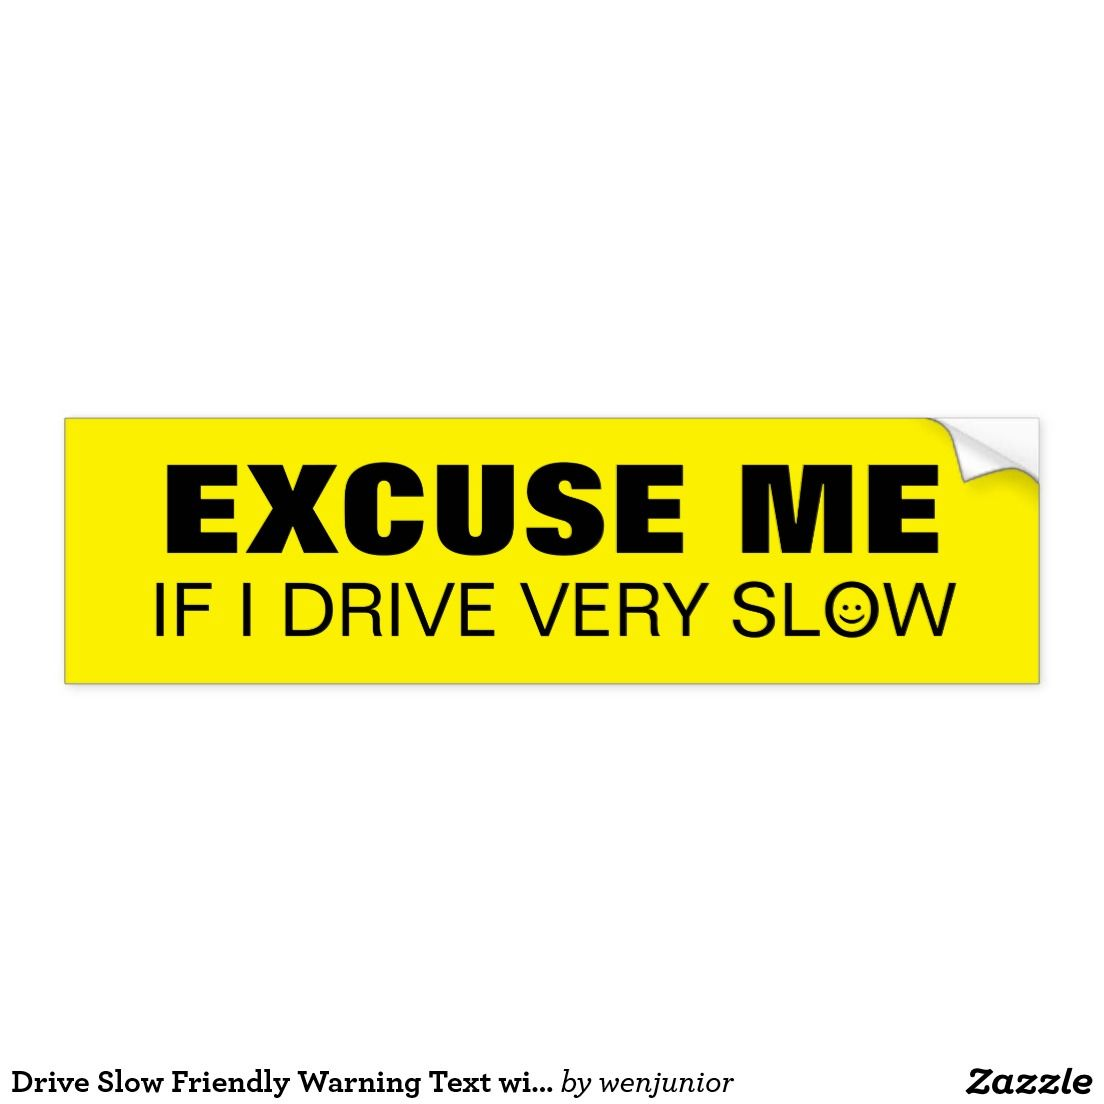 Drive Slow Friendly Warning Text With Face Bumper Sticker Zazzle Com In 2021 Bumper Stickers Car Bumper Stickers Strong Adhesive [ 1104 x 1104 Pixel ]